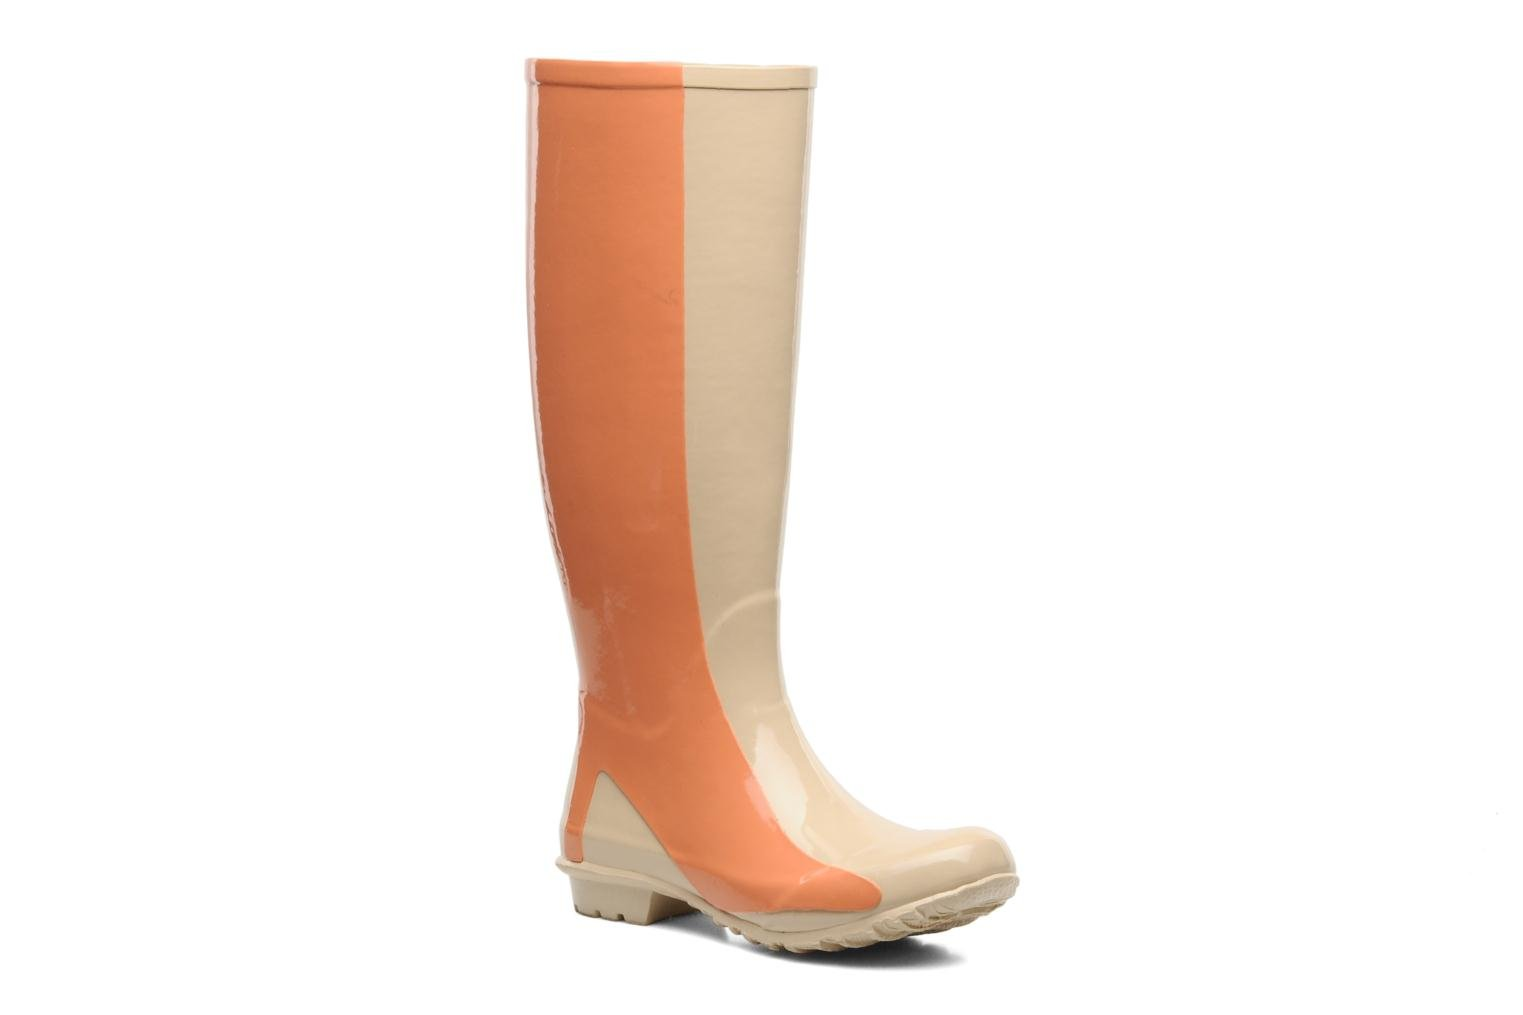 Marques Chaussure femme Be&D femme Singing in the rainboots pink blush